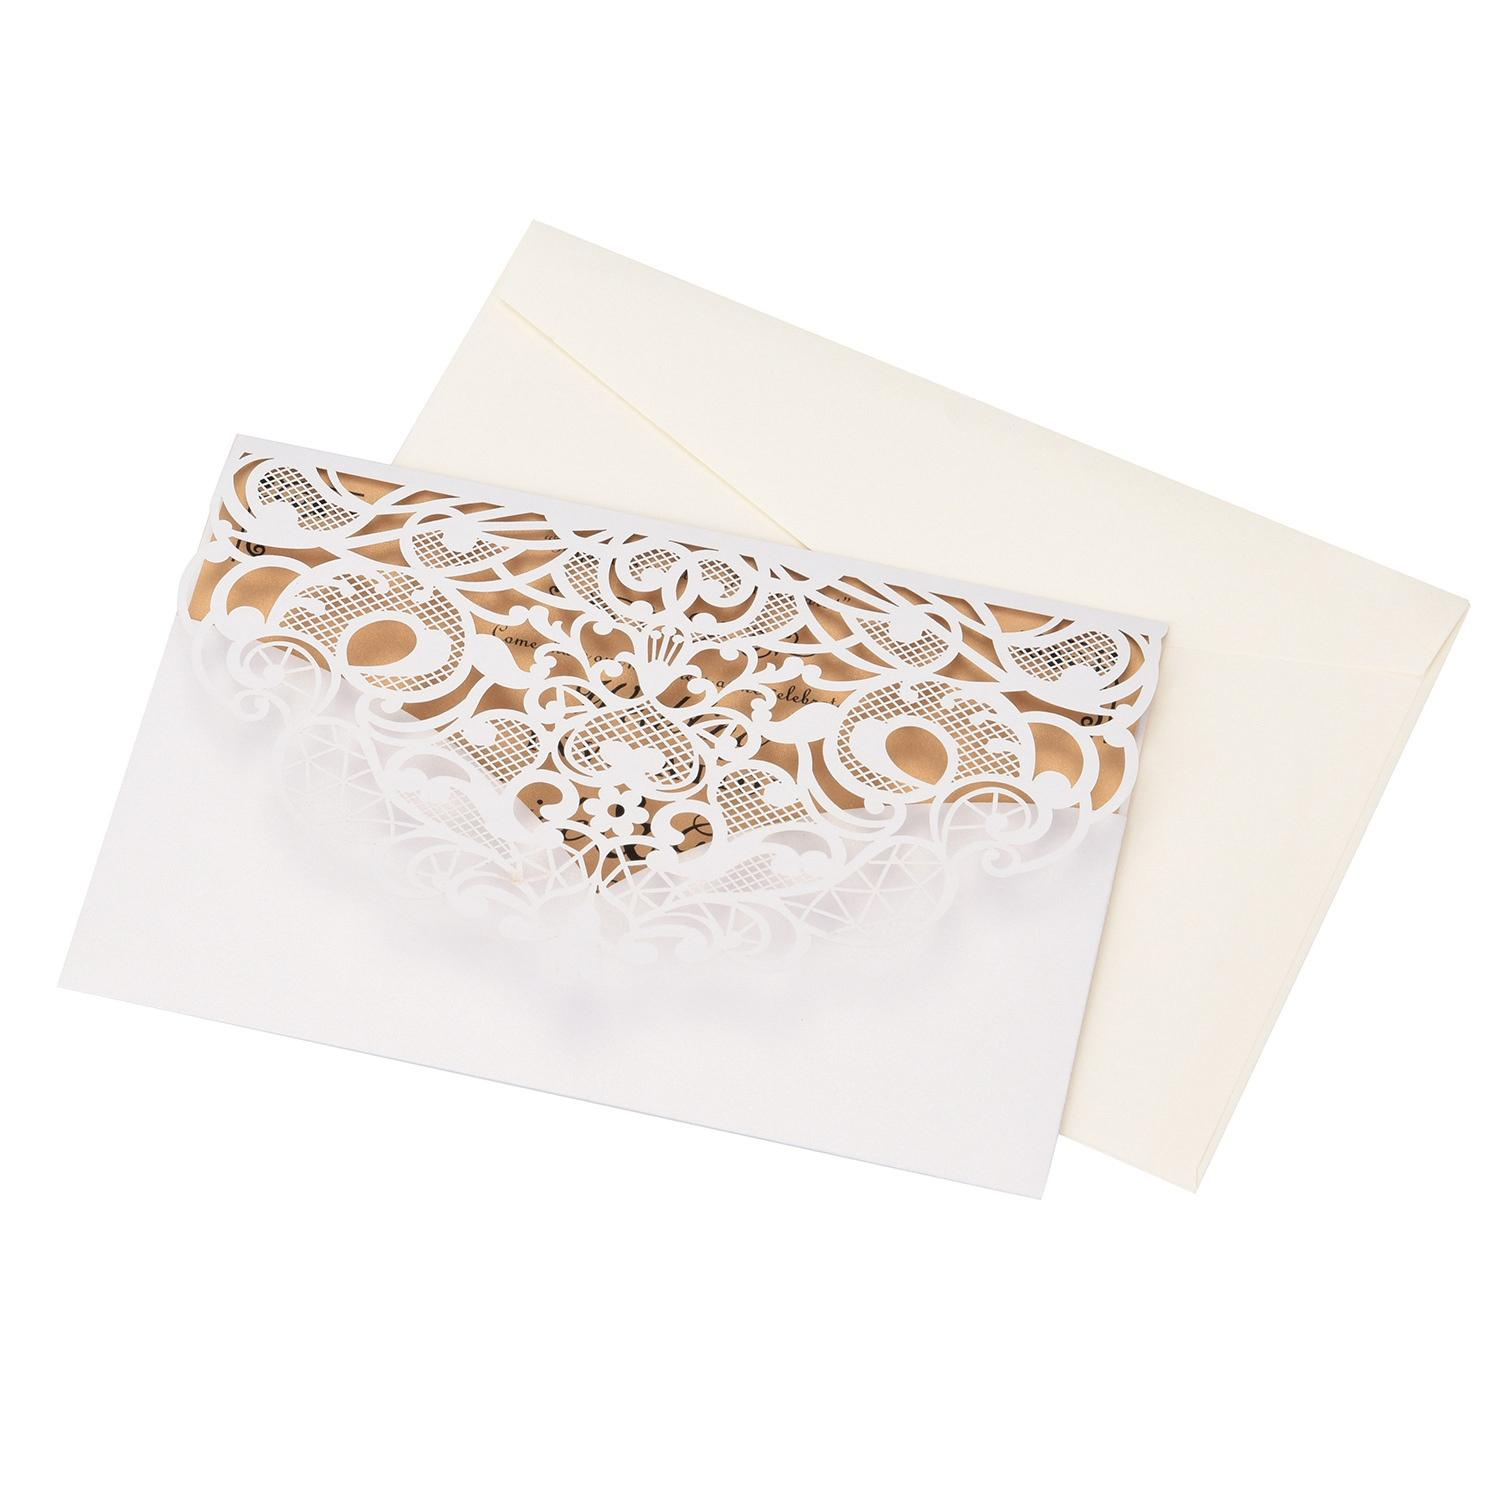 20Pcs Wedding Invitation Cards -Cut Gold Foil And Floral Design Invitation Pockets for Bridal Showers, Engagement Parties(White)